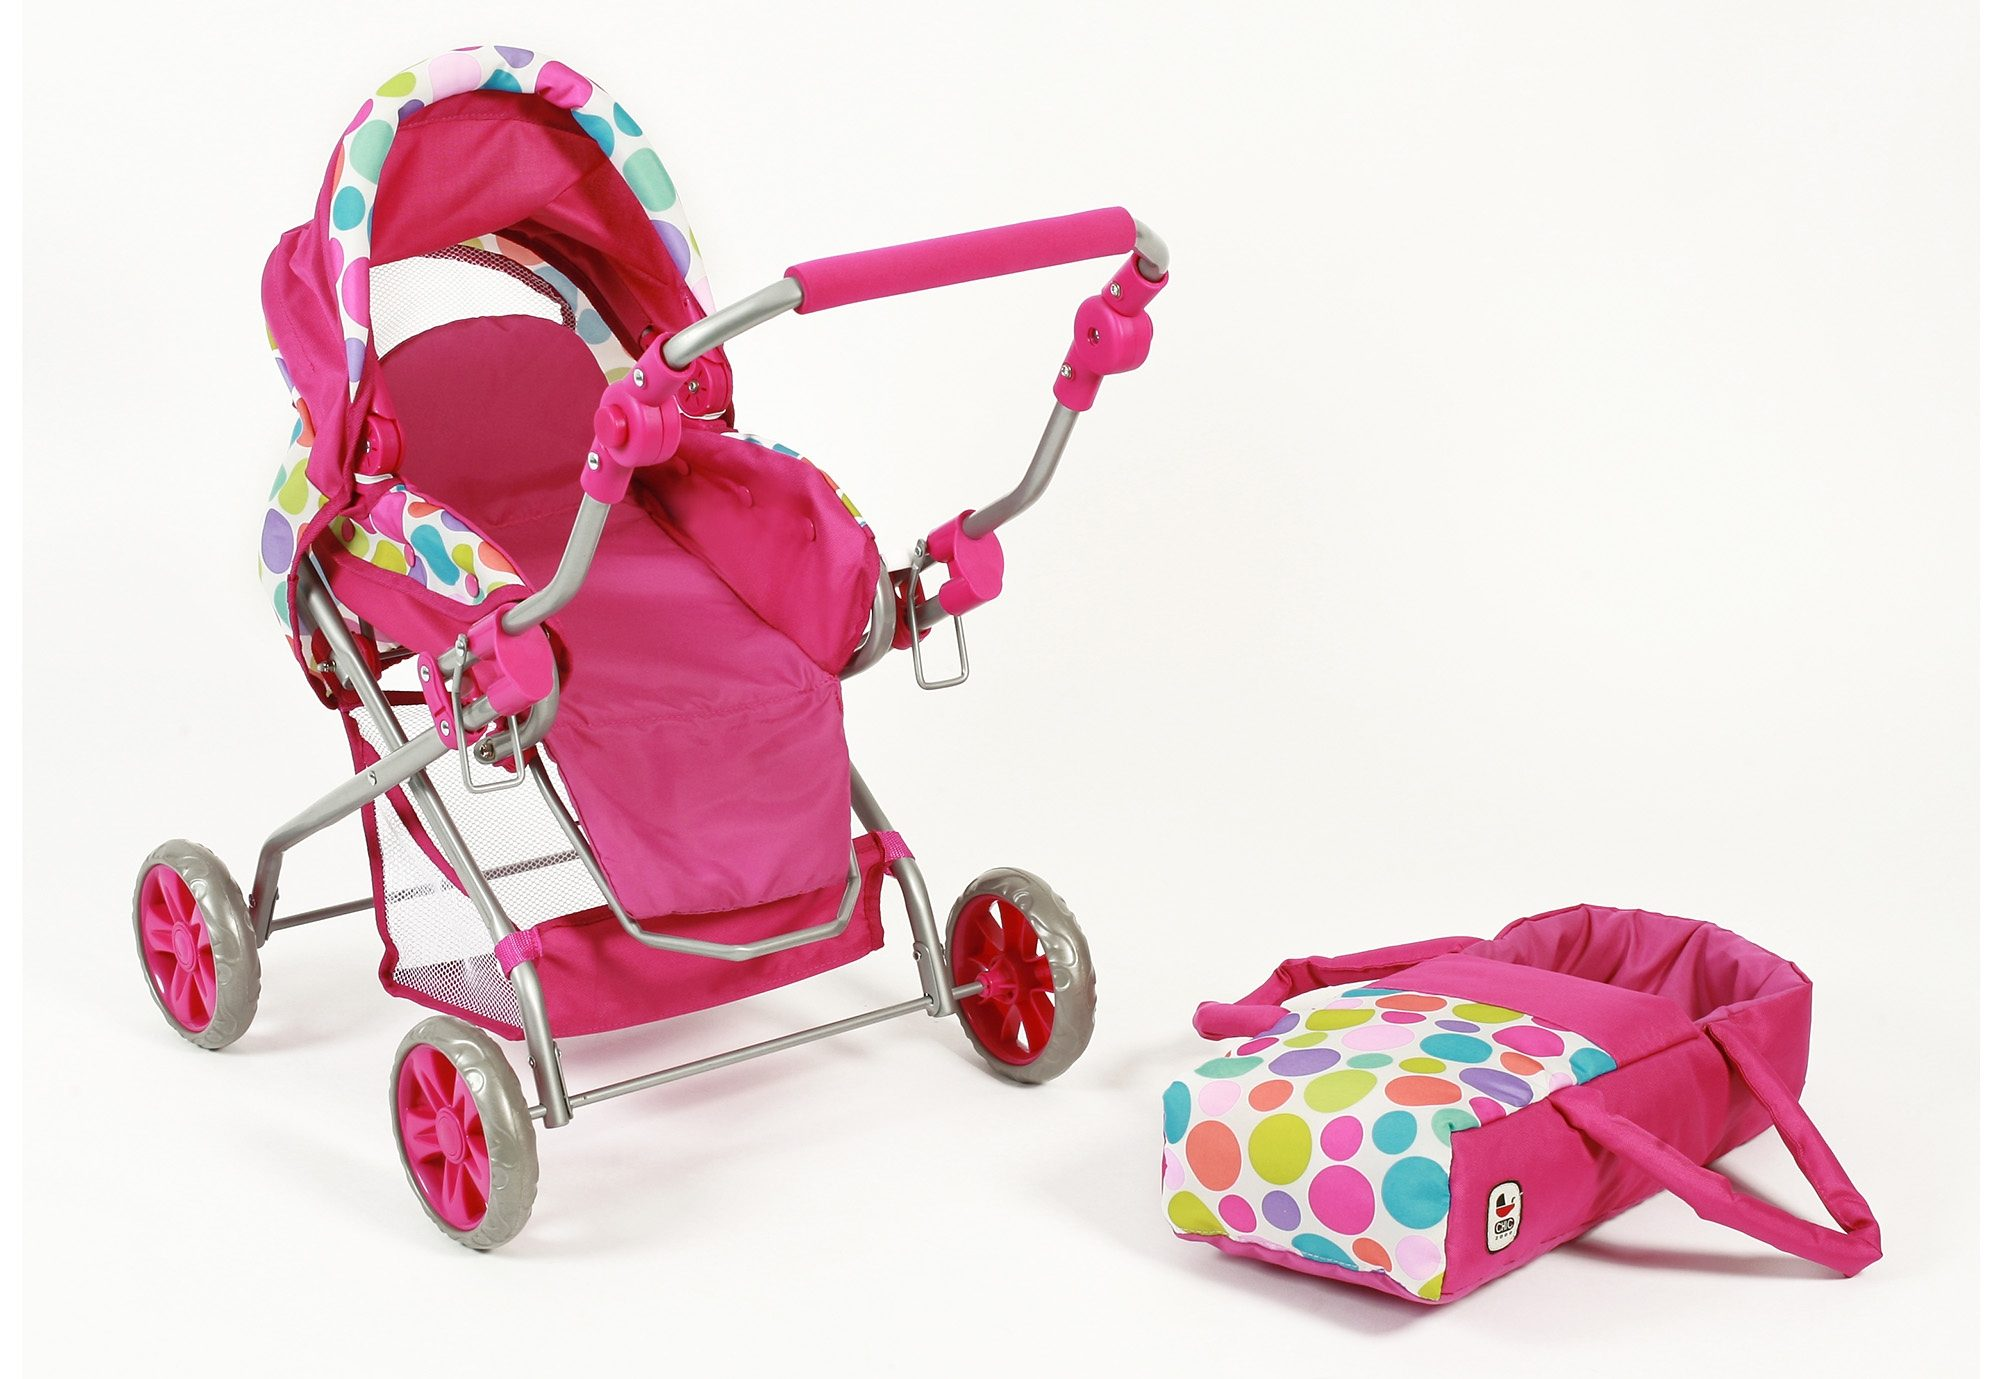 CHIC2000 Puppenwagen, »Piccolina, pink«